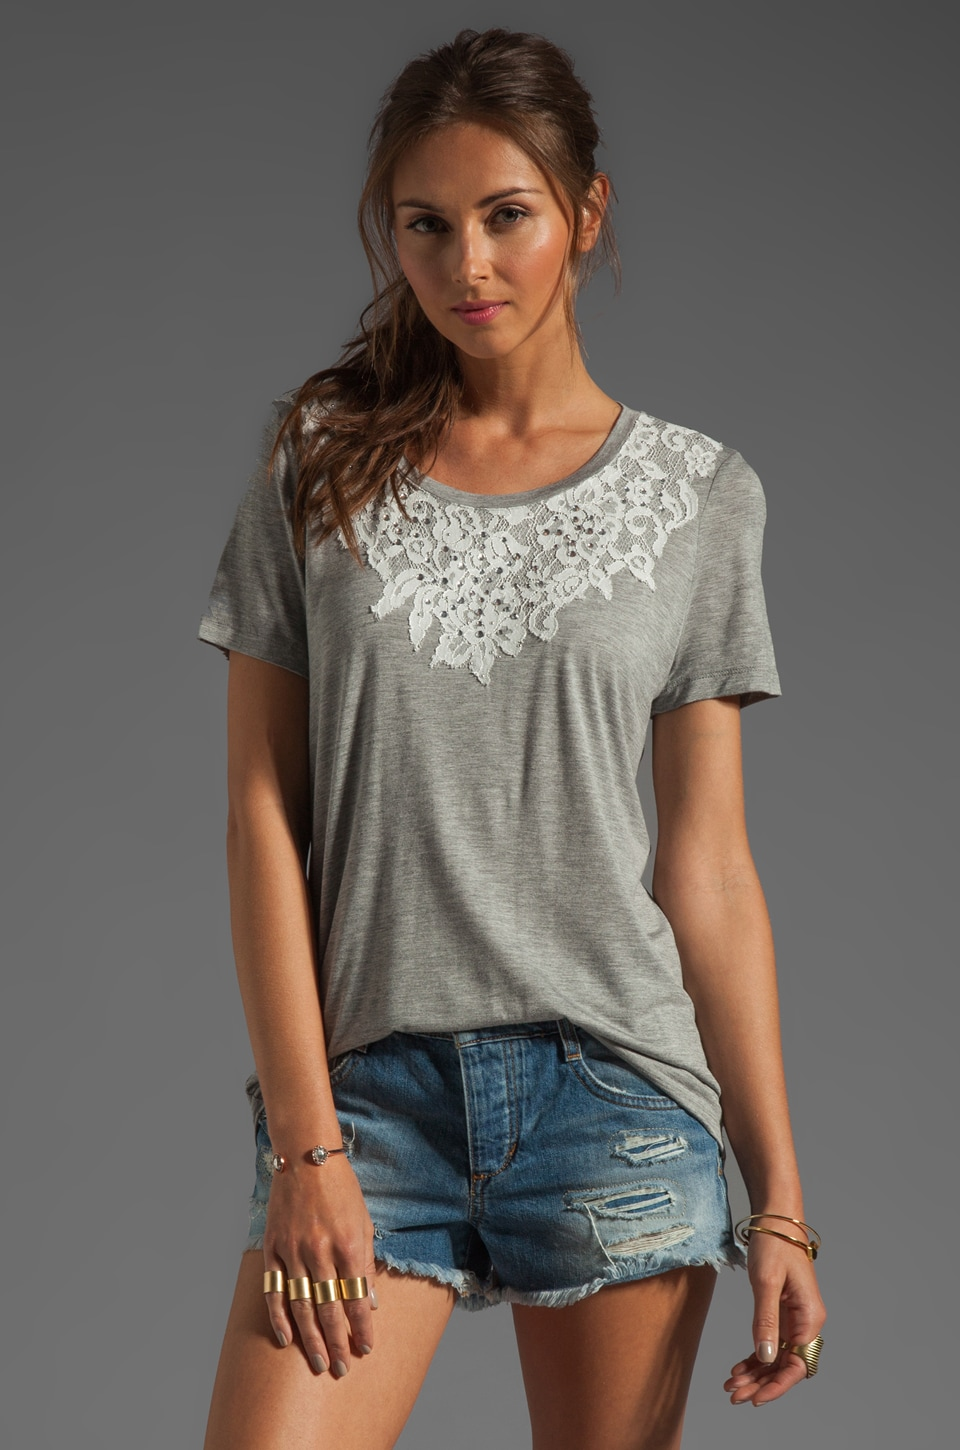 Haute Hippie Crewneck Tee with Lace Detail in Light Heather Grey